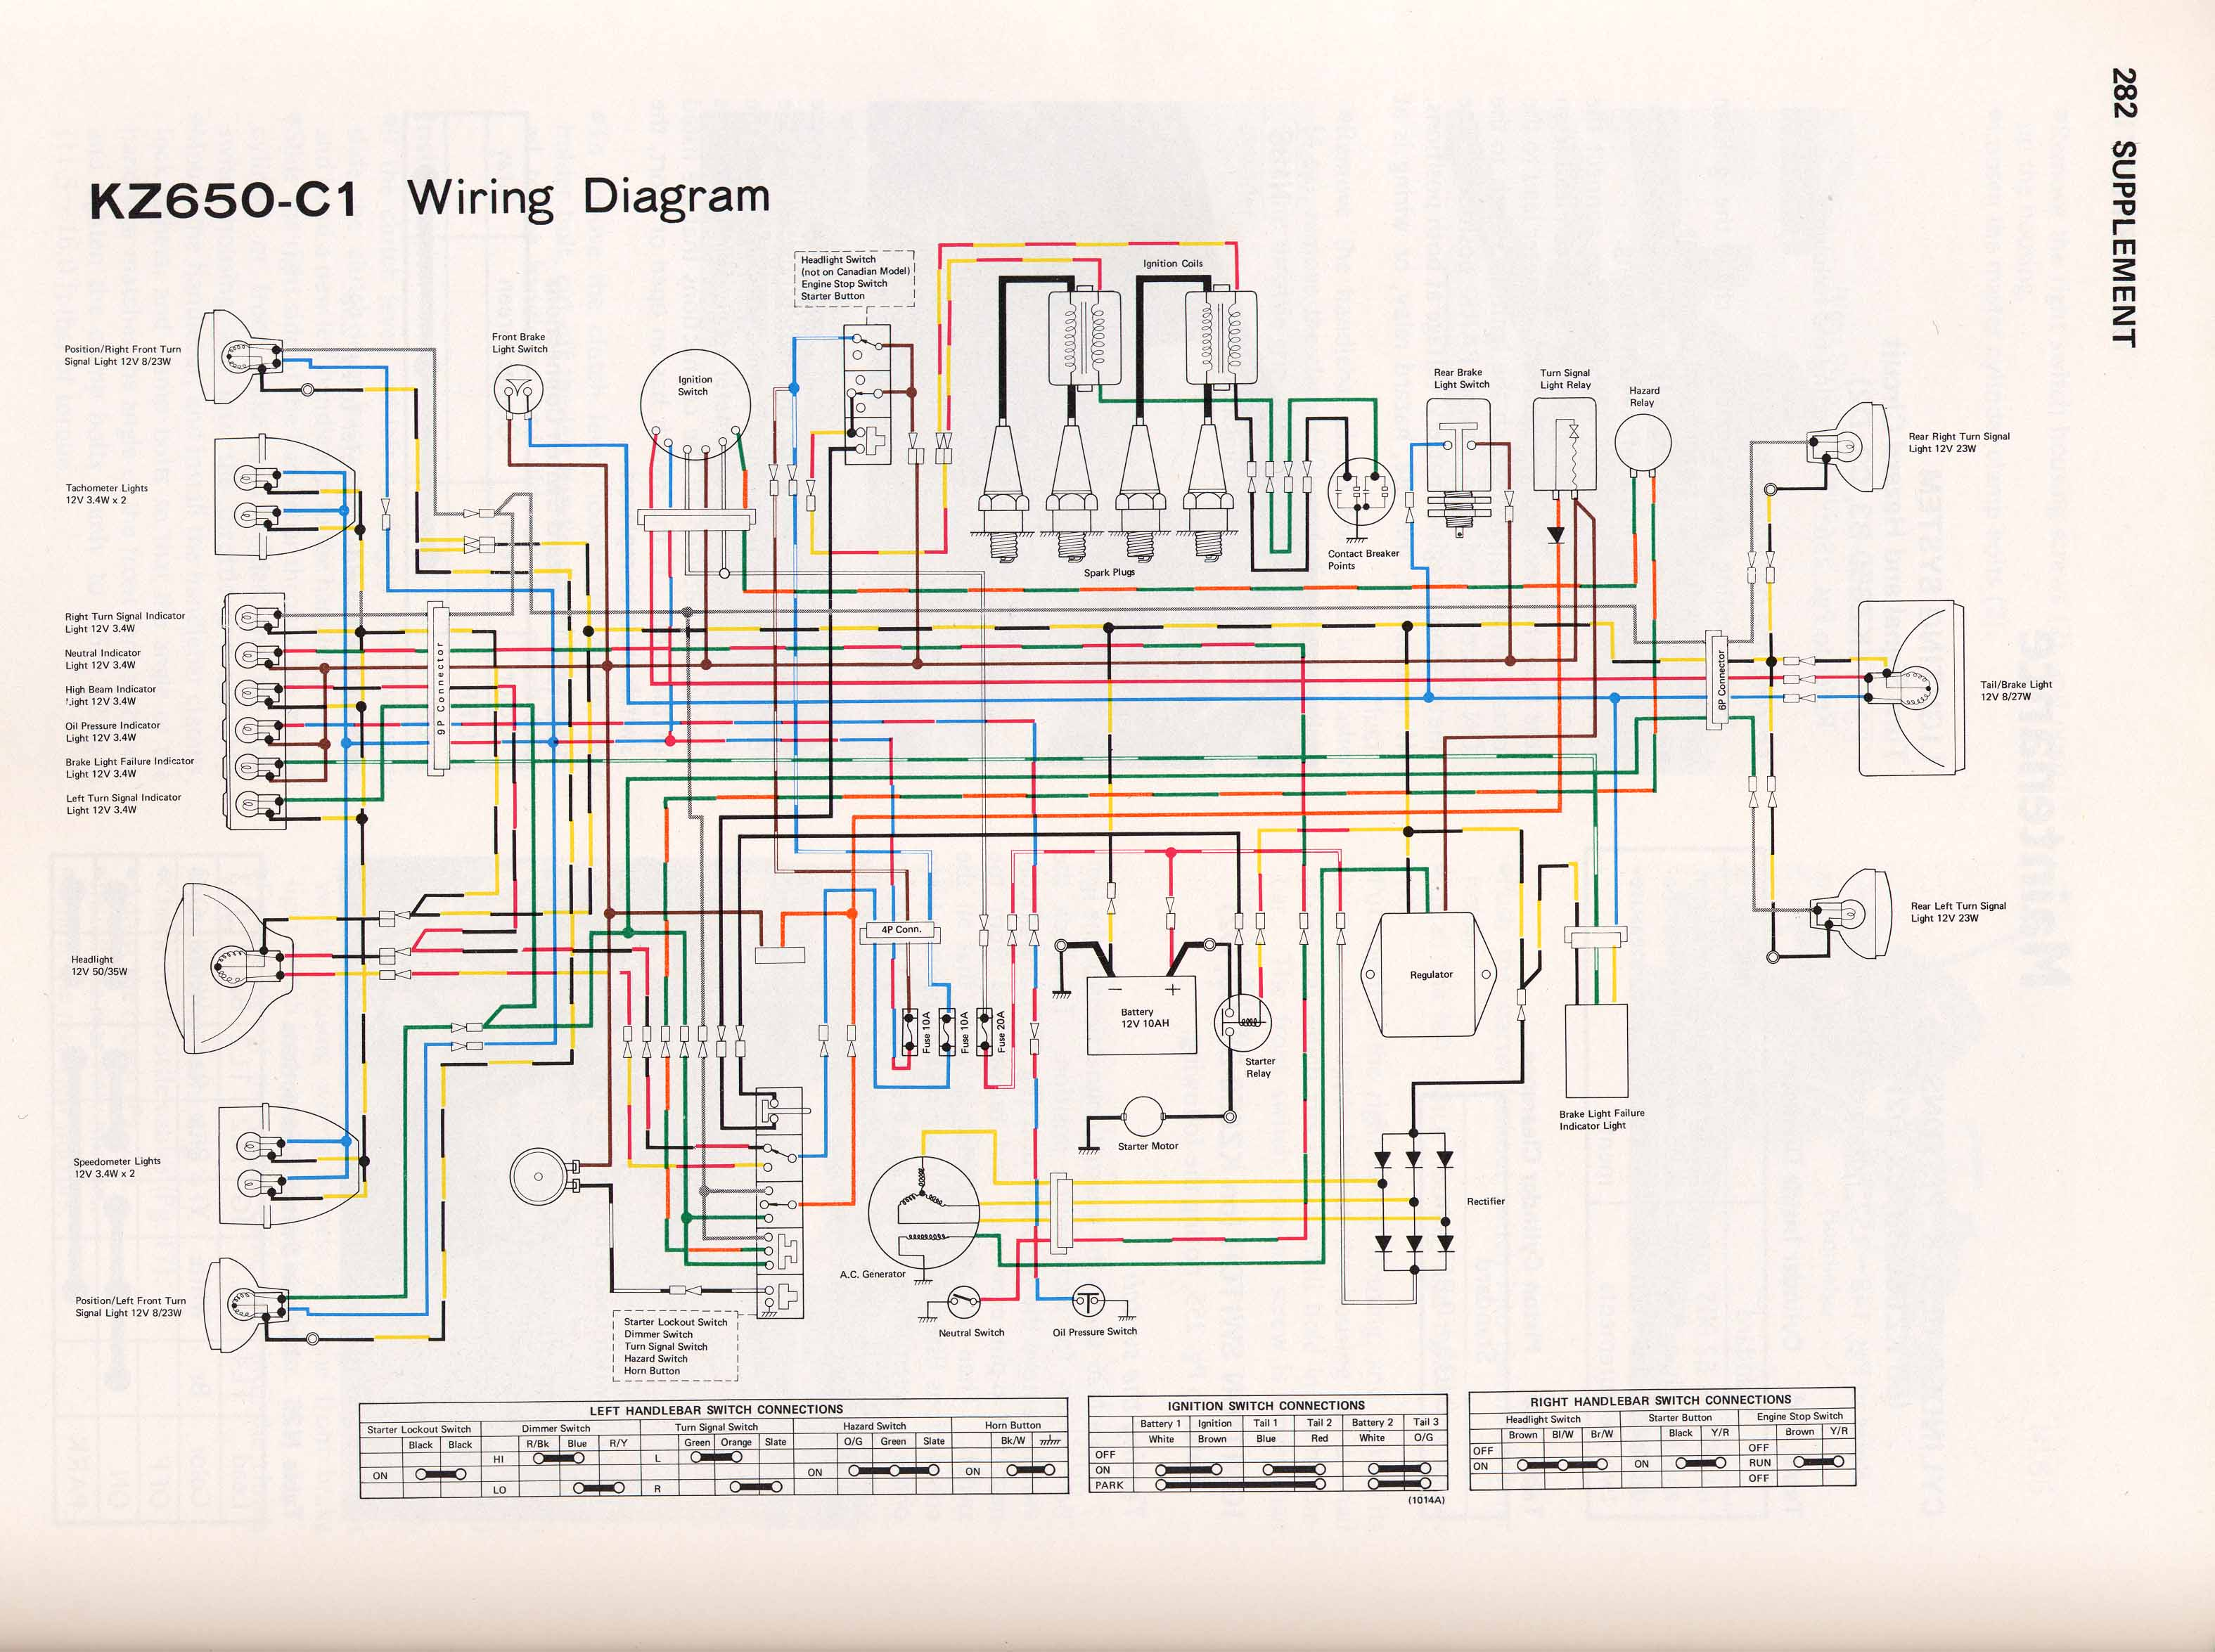 Kawasaki Brute 750 Wiring - Diagrams Catalogue on